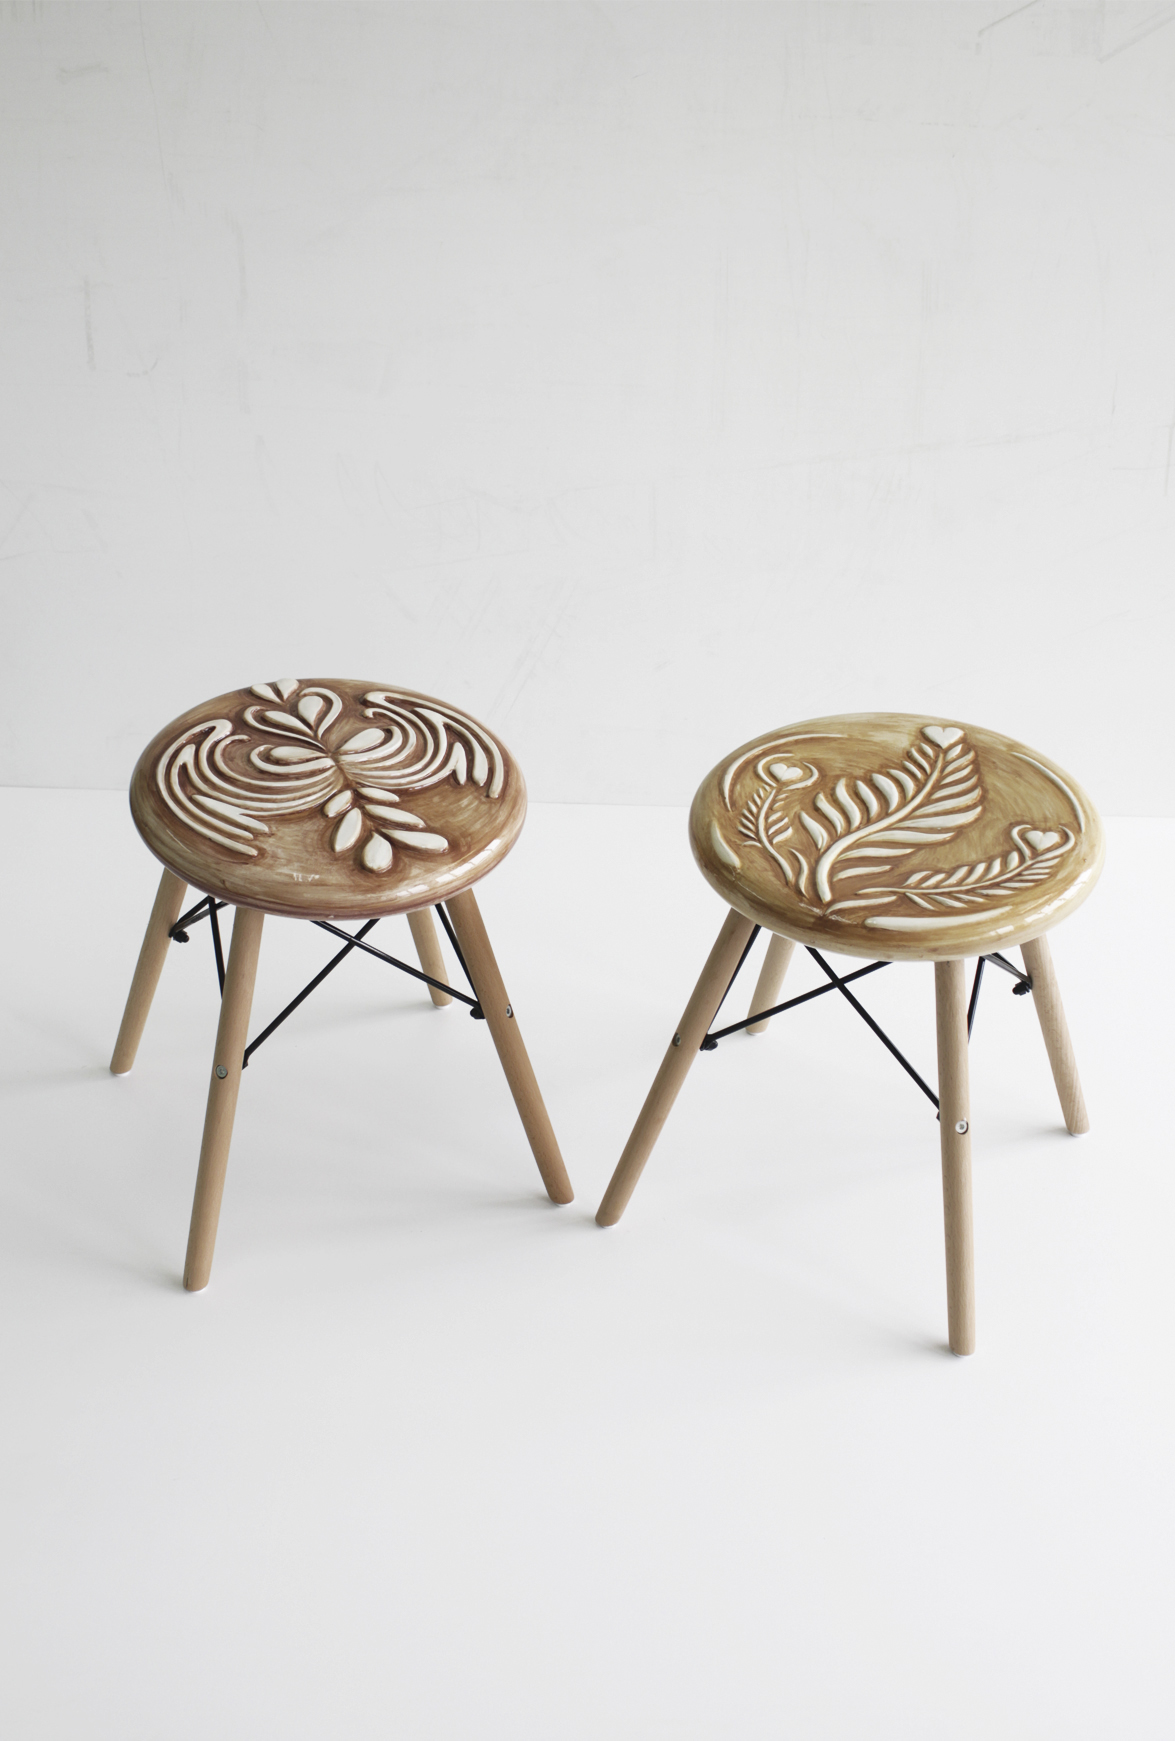 Diego Cibelli Generosity Chairs , 2018 - 2019 ceramic and wood Courtesy the artis